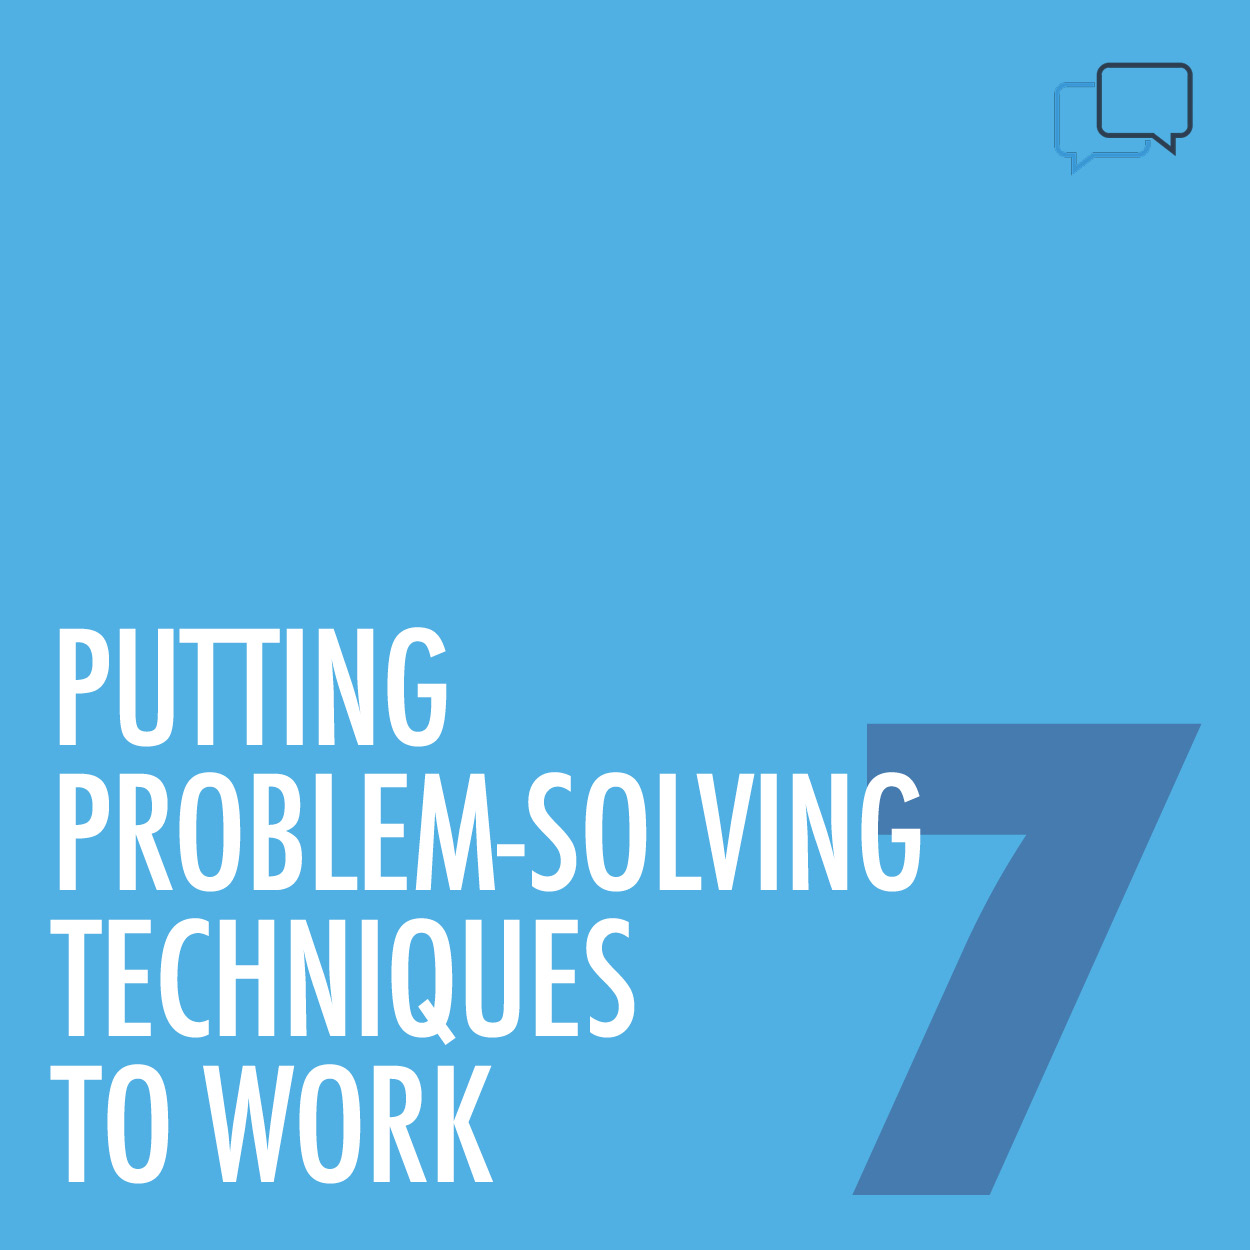 Putting problem-solving techniques to work